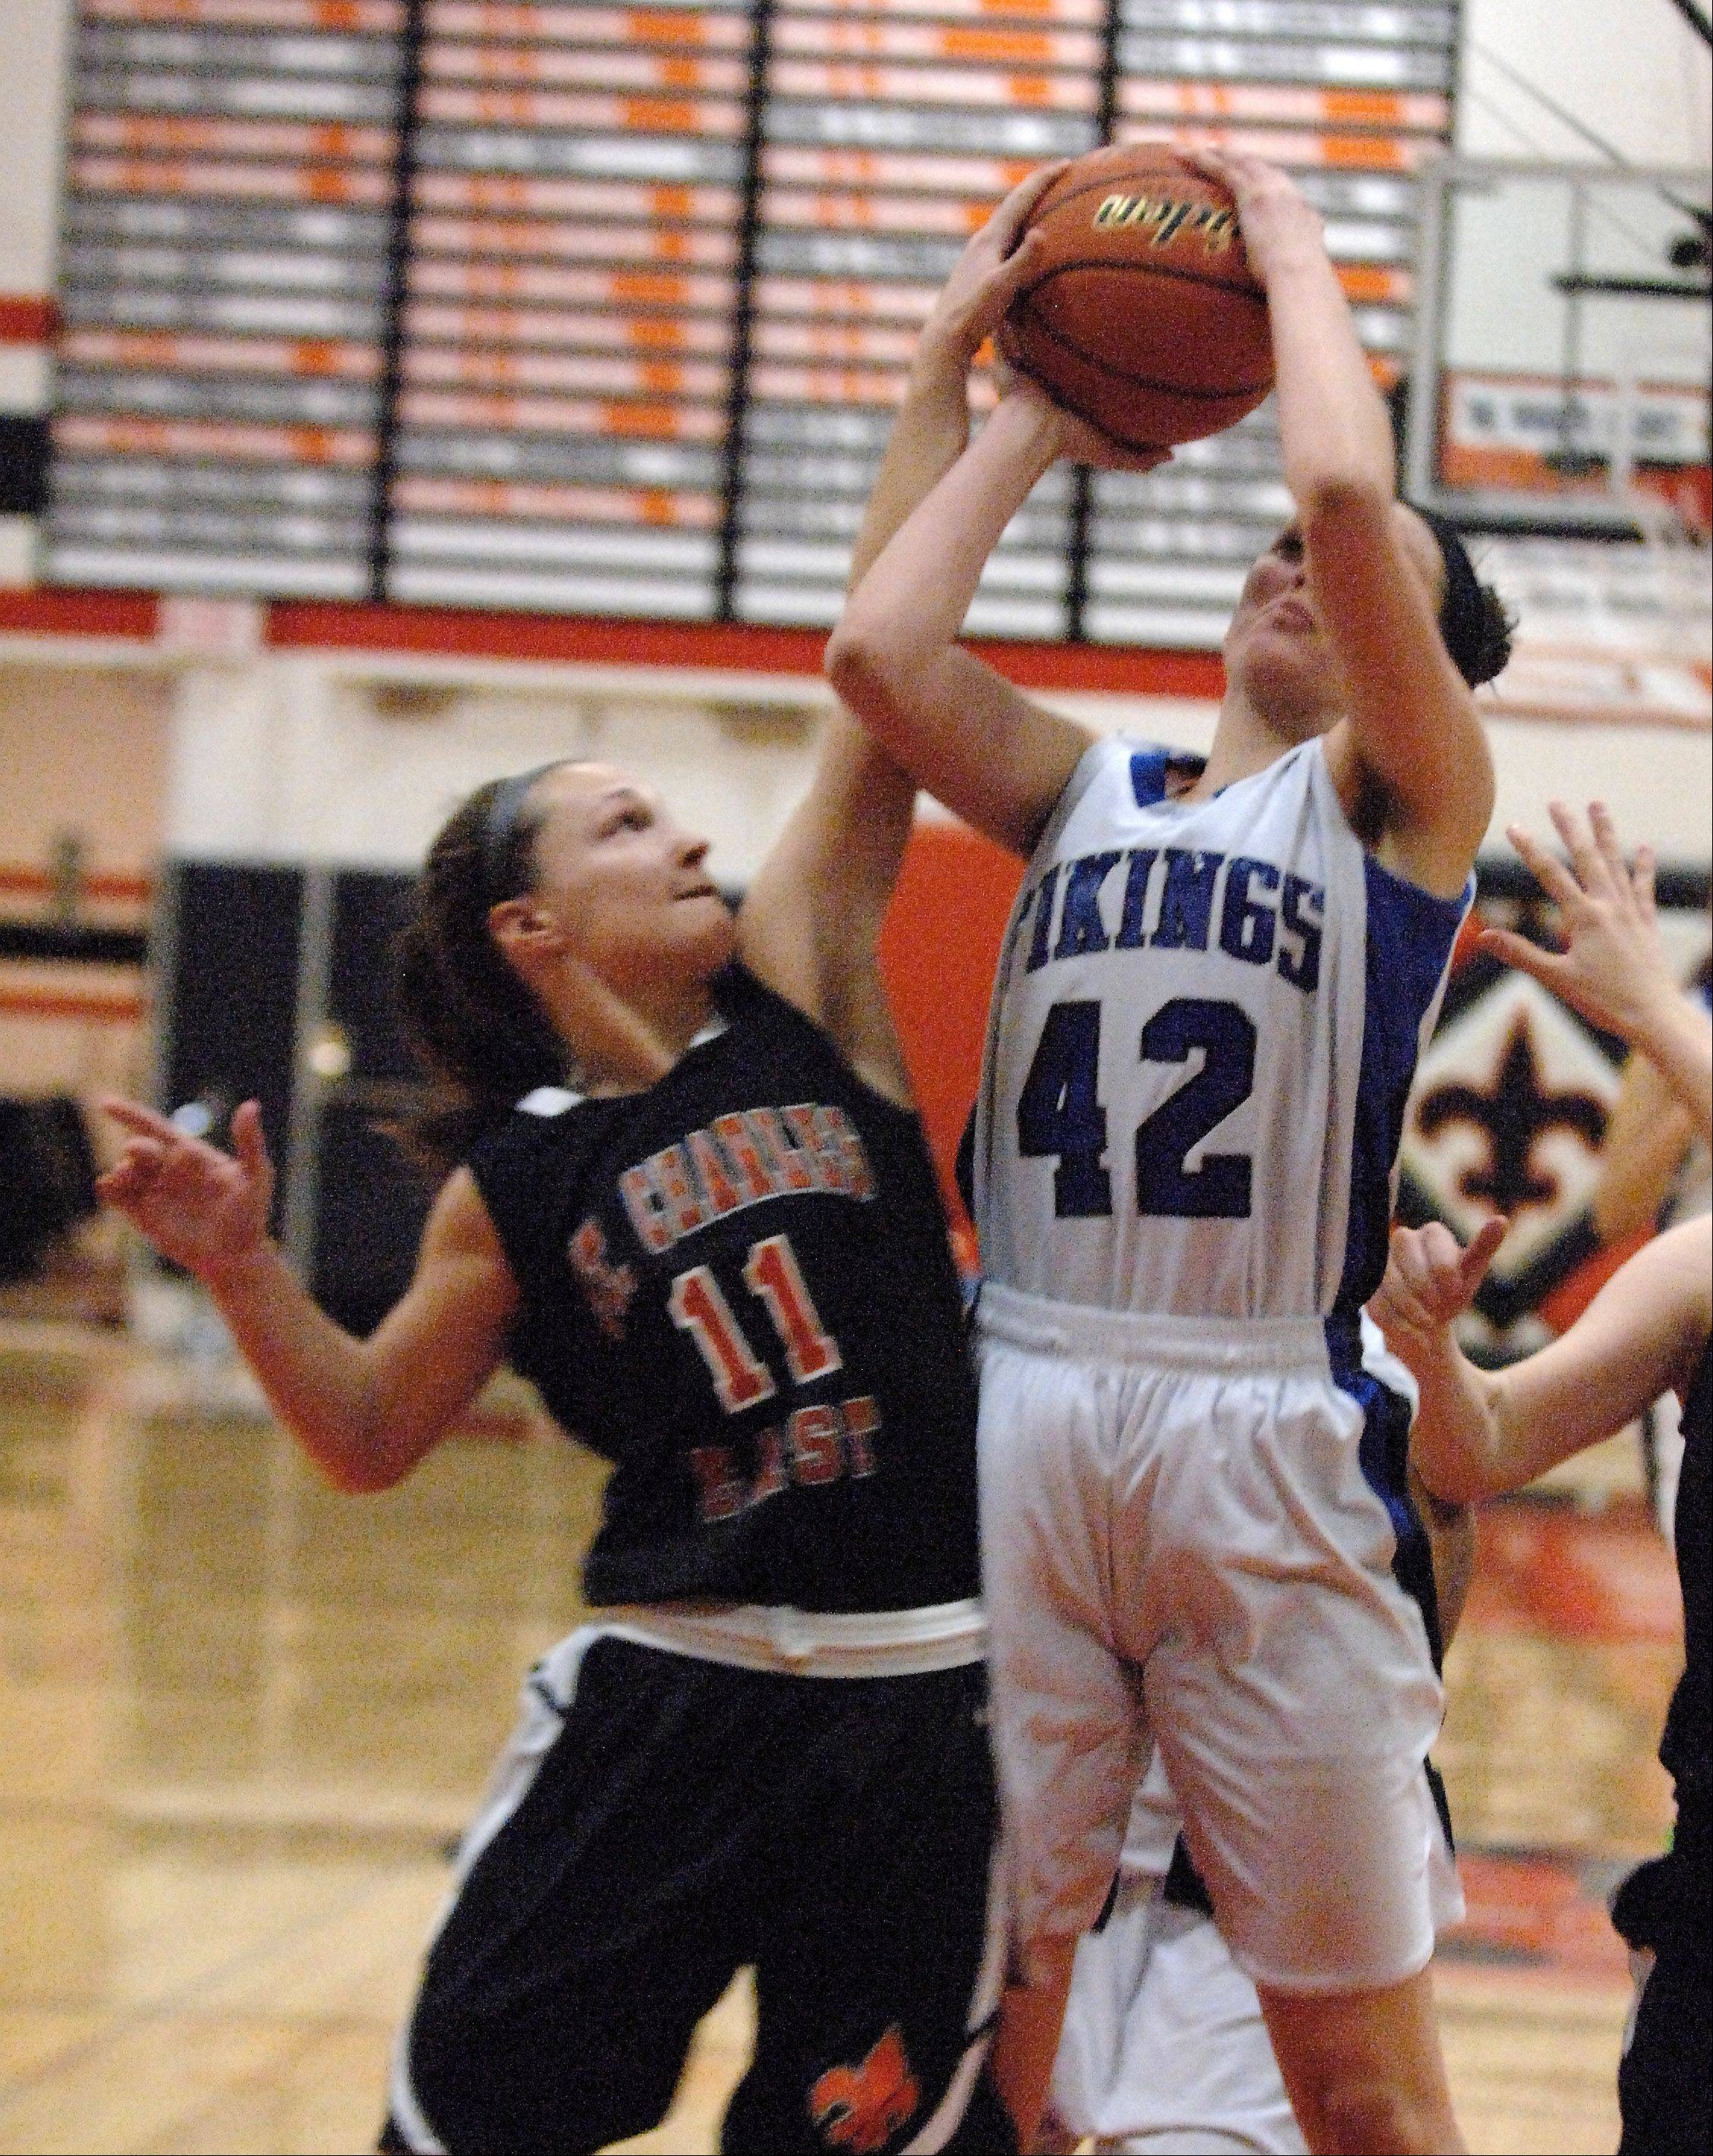 Images from the Geneva vs. St. Charles East regional championship game Thursday, February 14, 2013.